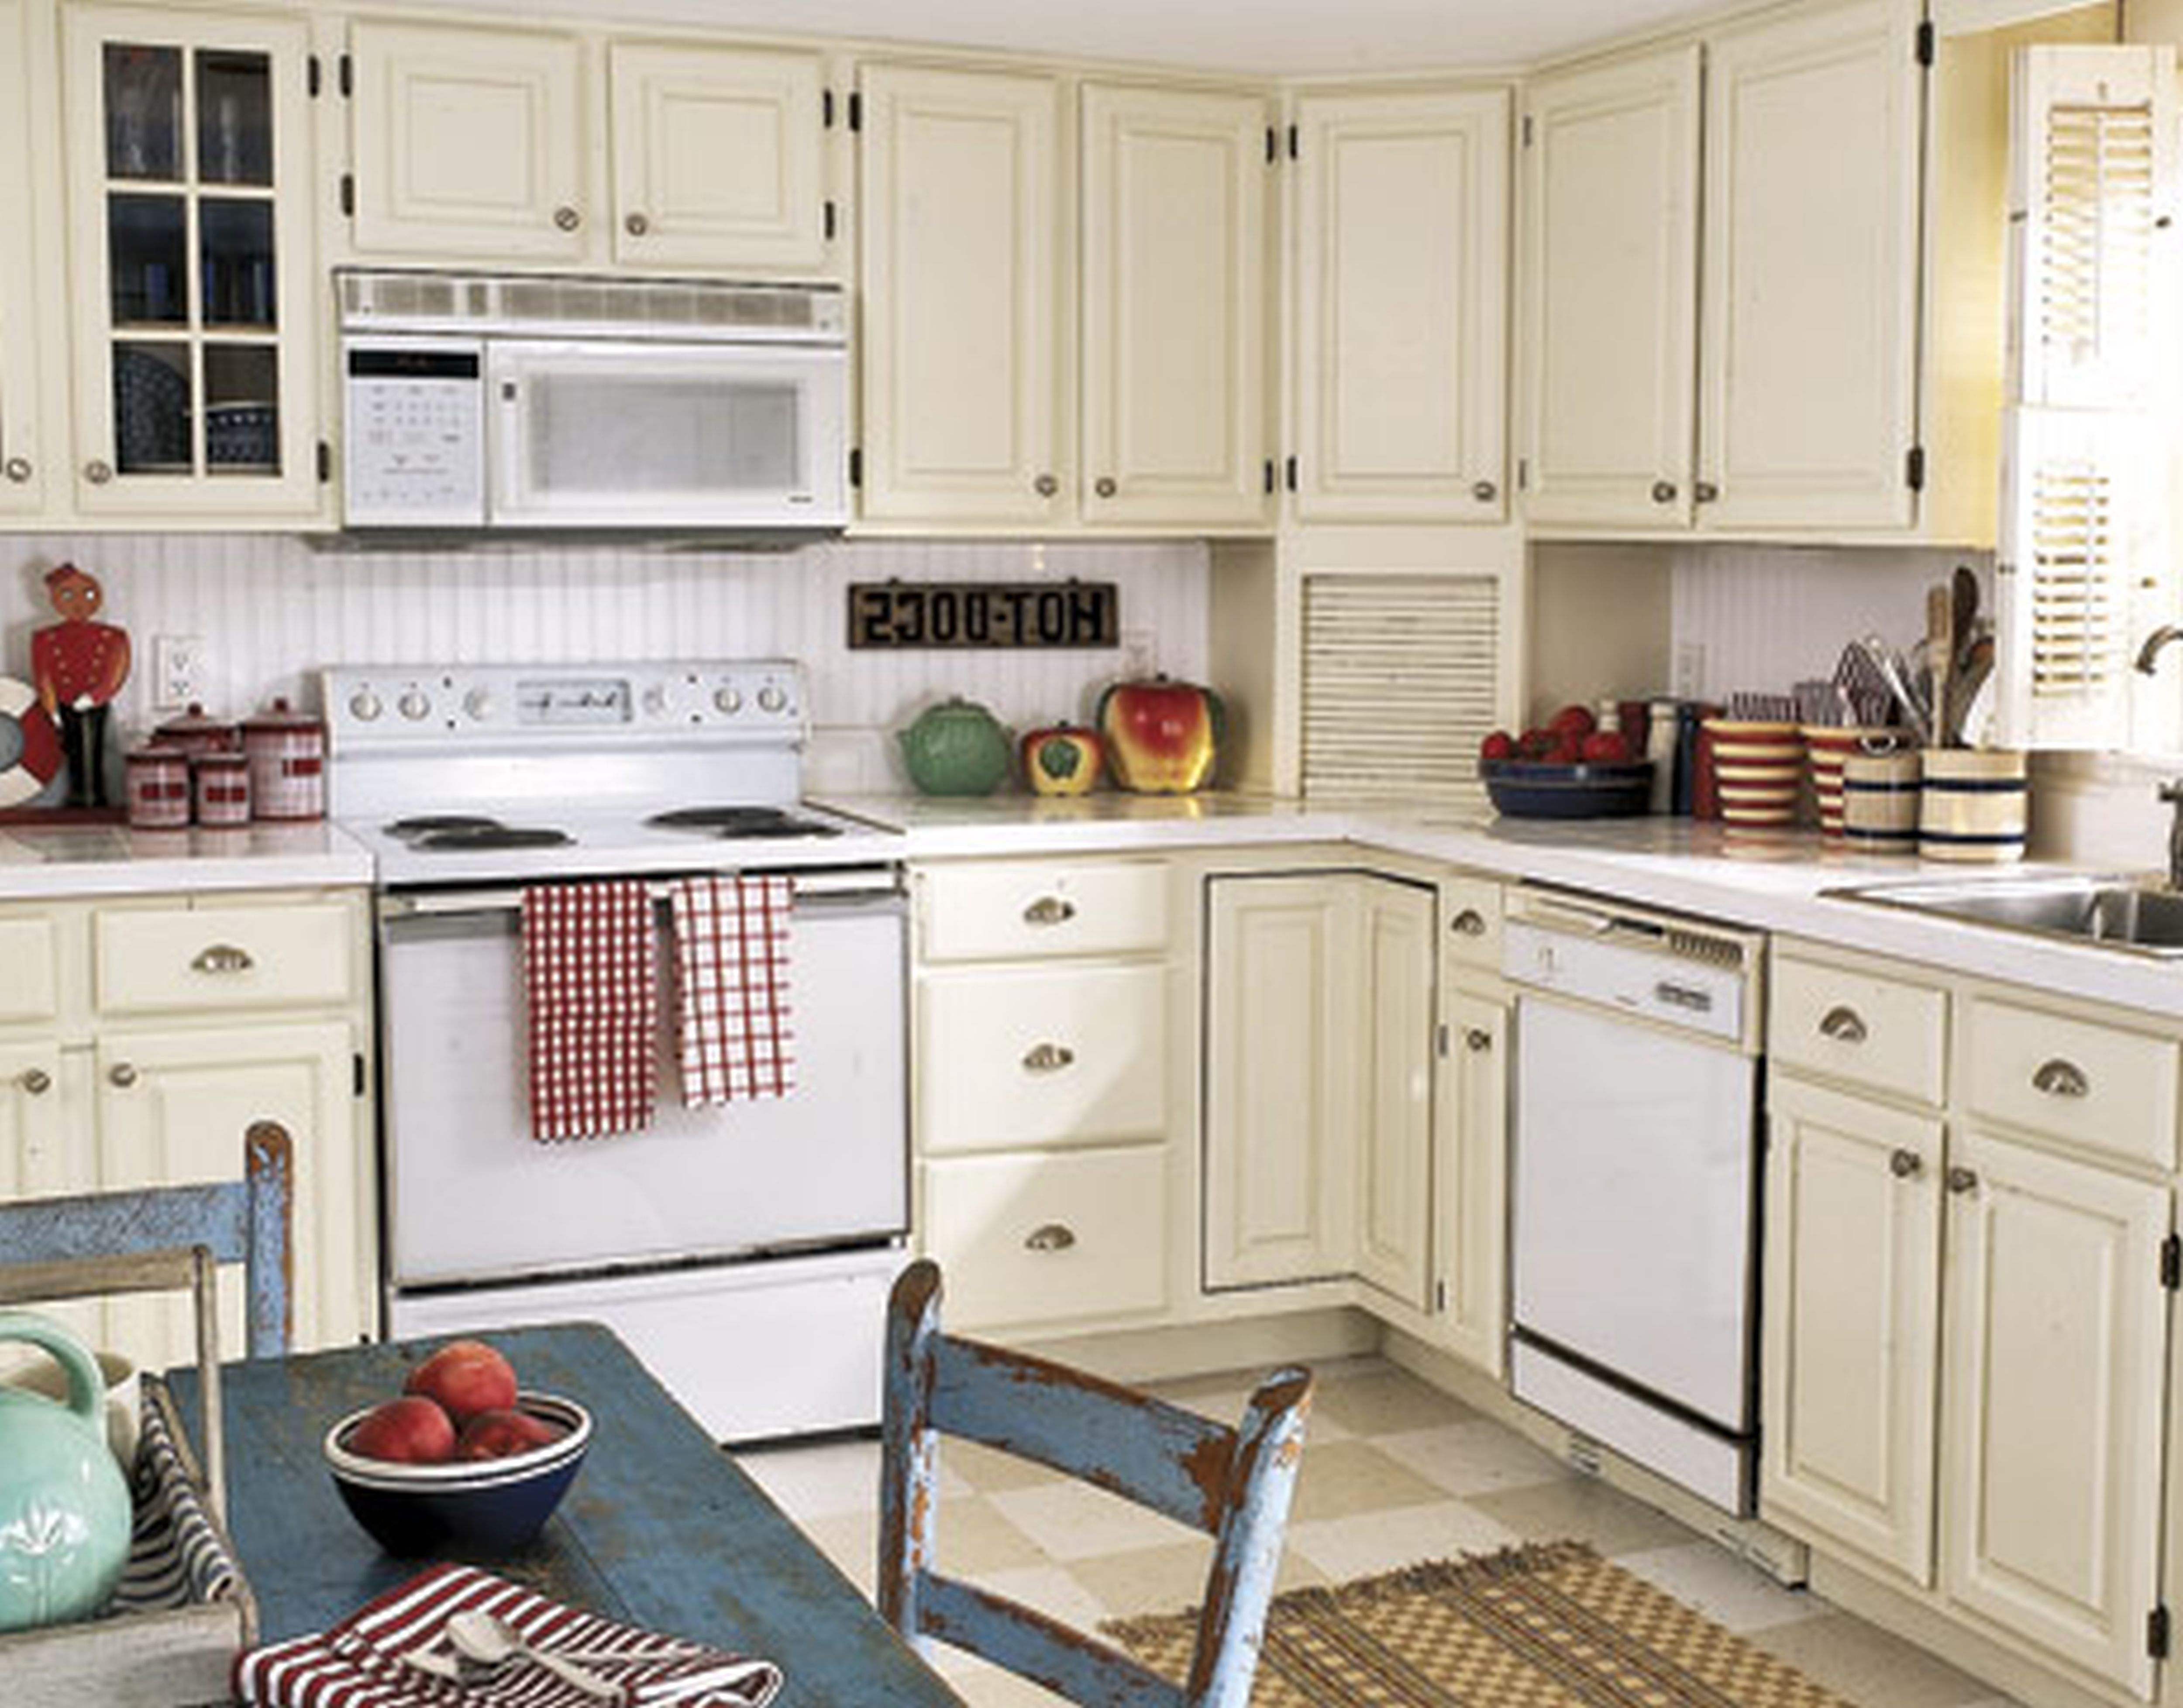 Home Decor Ideas Kitchen Cabinets